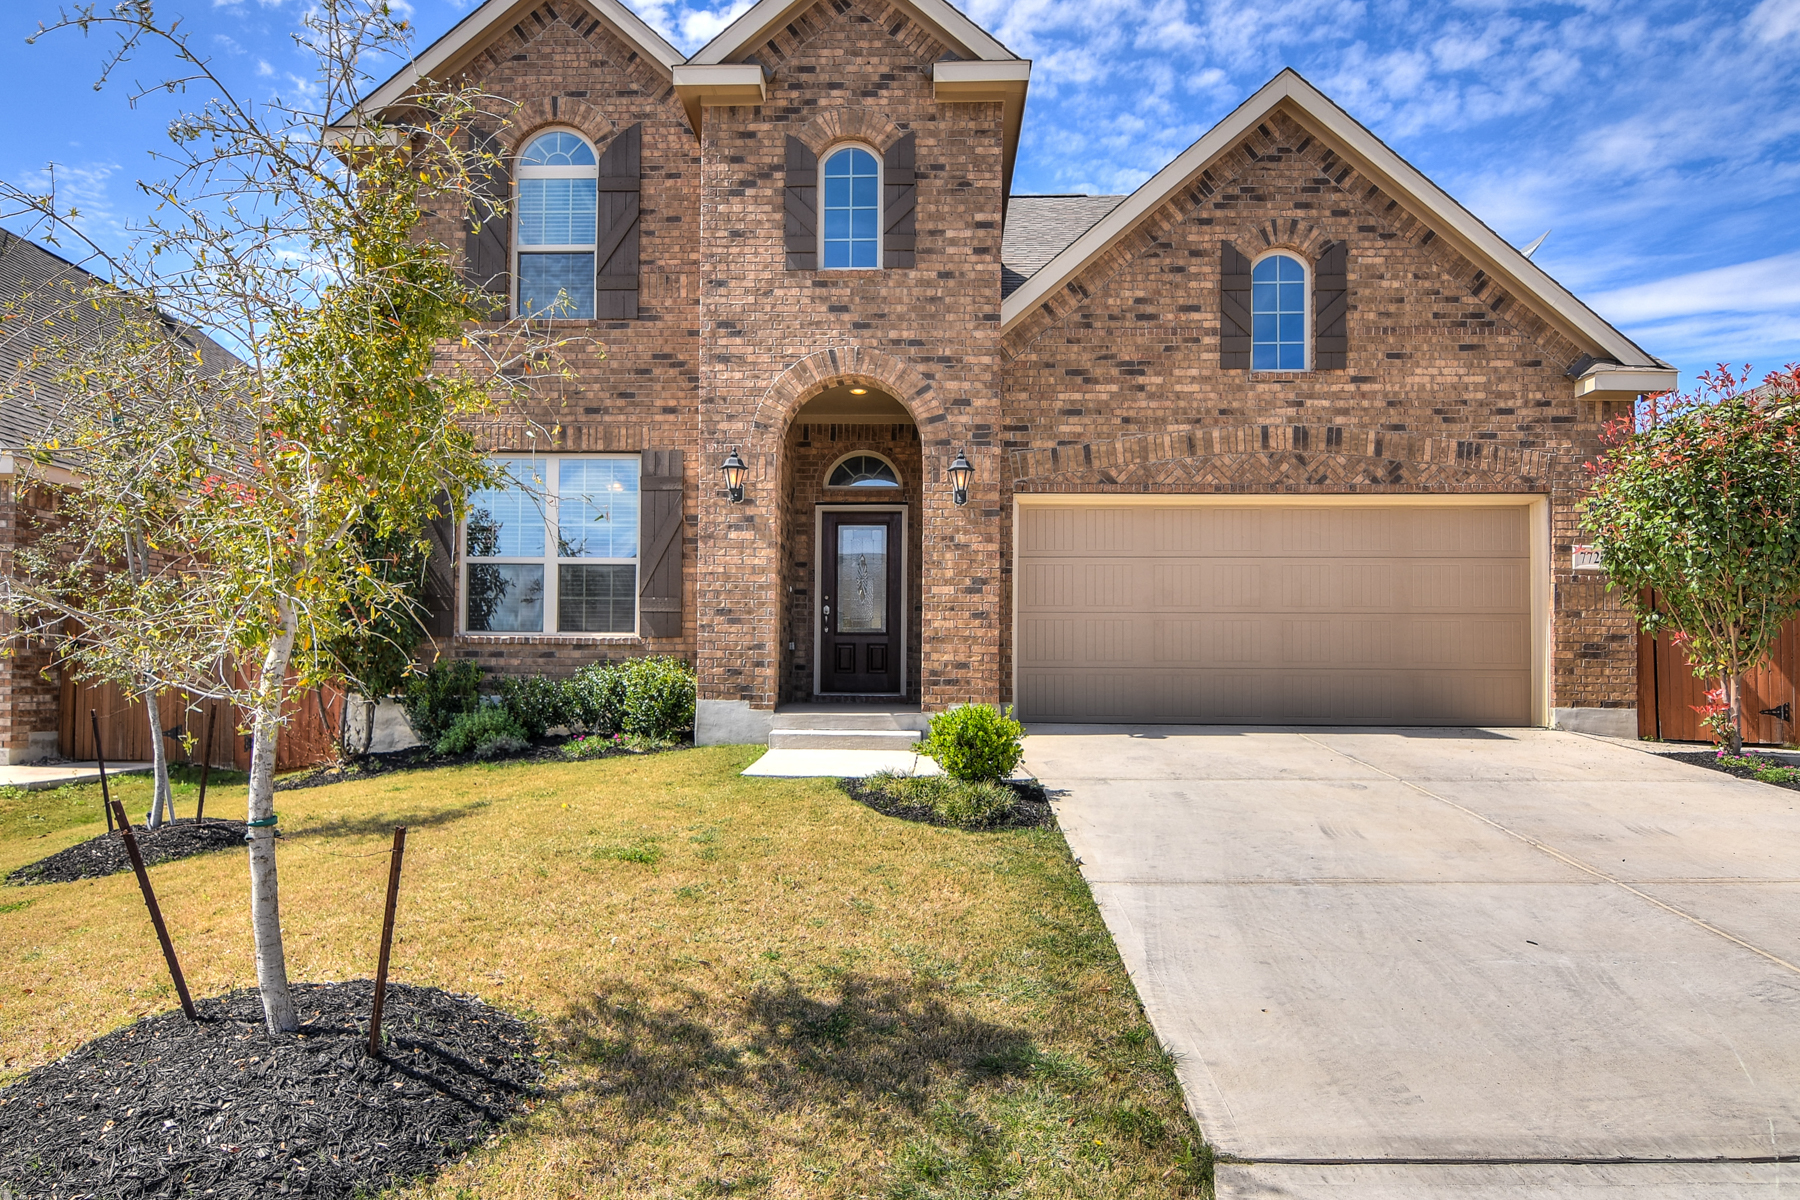 Single Family Home for Sale at Move-In Ready in Stillwater Ranch 7727 William Bonney San Antonio, Texas, 78254 United States